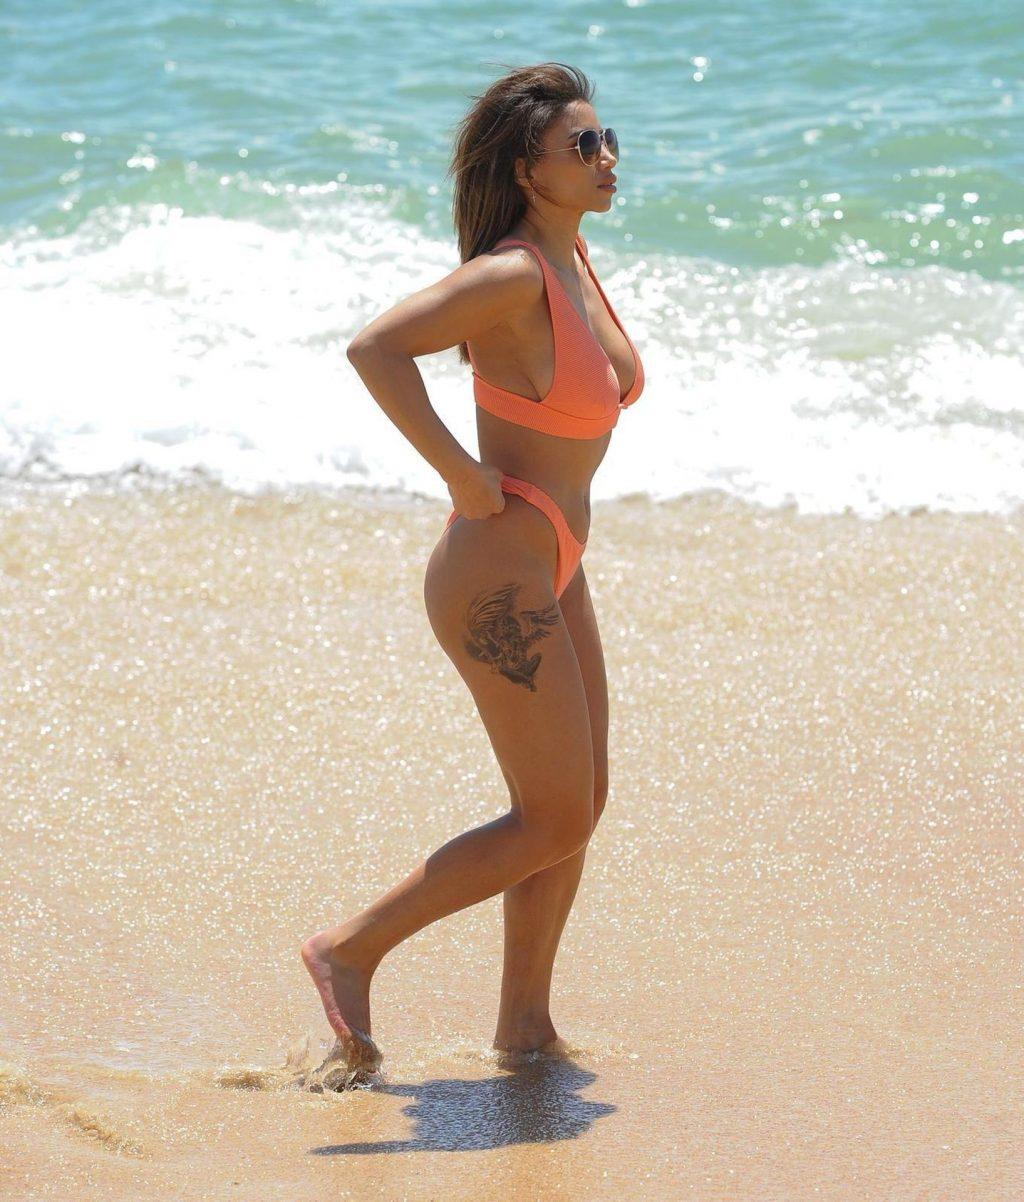 Kayleigh Morris is Seen Enjoying a Break on the Beach (20 Photos)